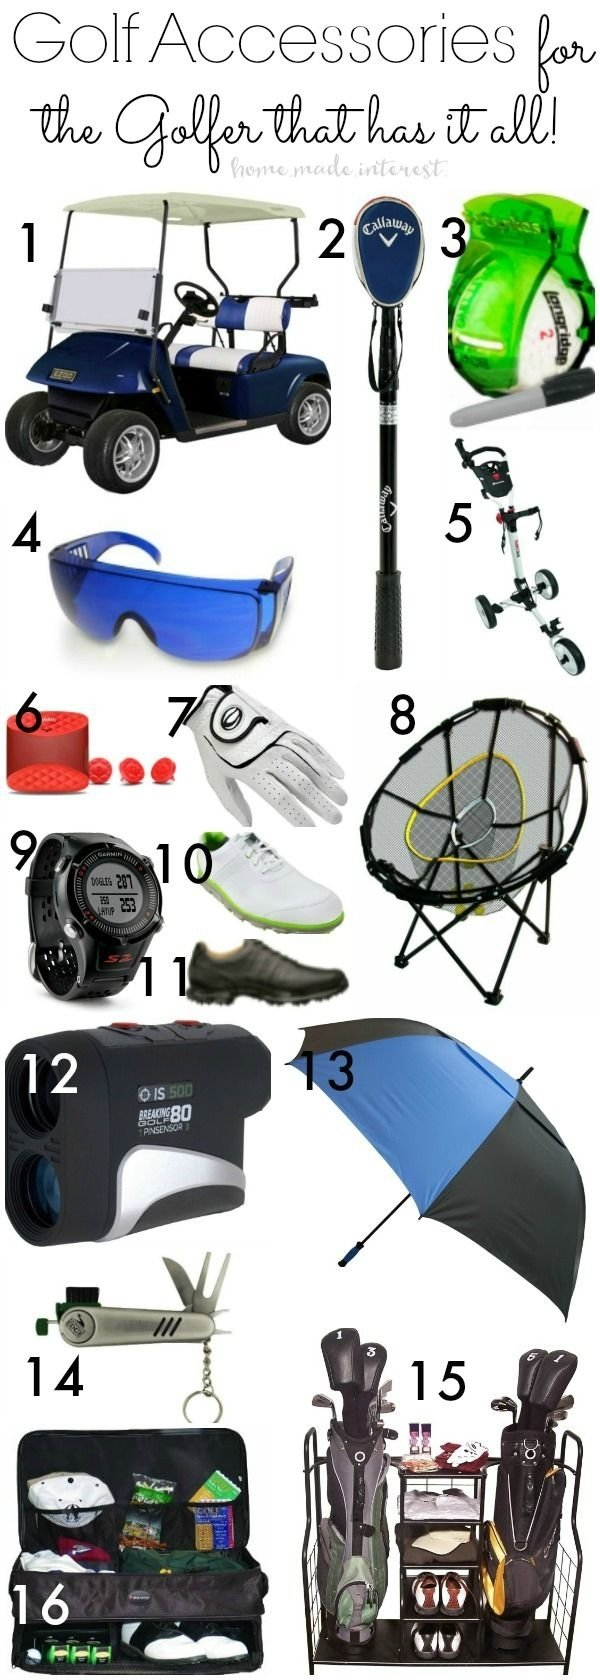 10 Elegant Golf Gift Ideas For Dad if you need golf accessories for the golfer that has it all heres 1